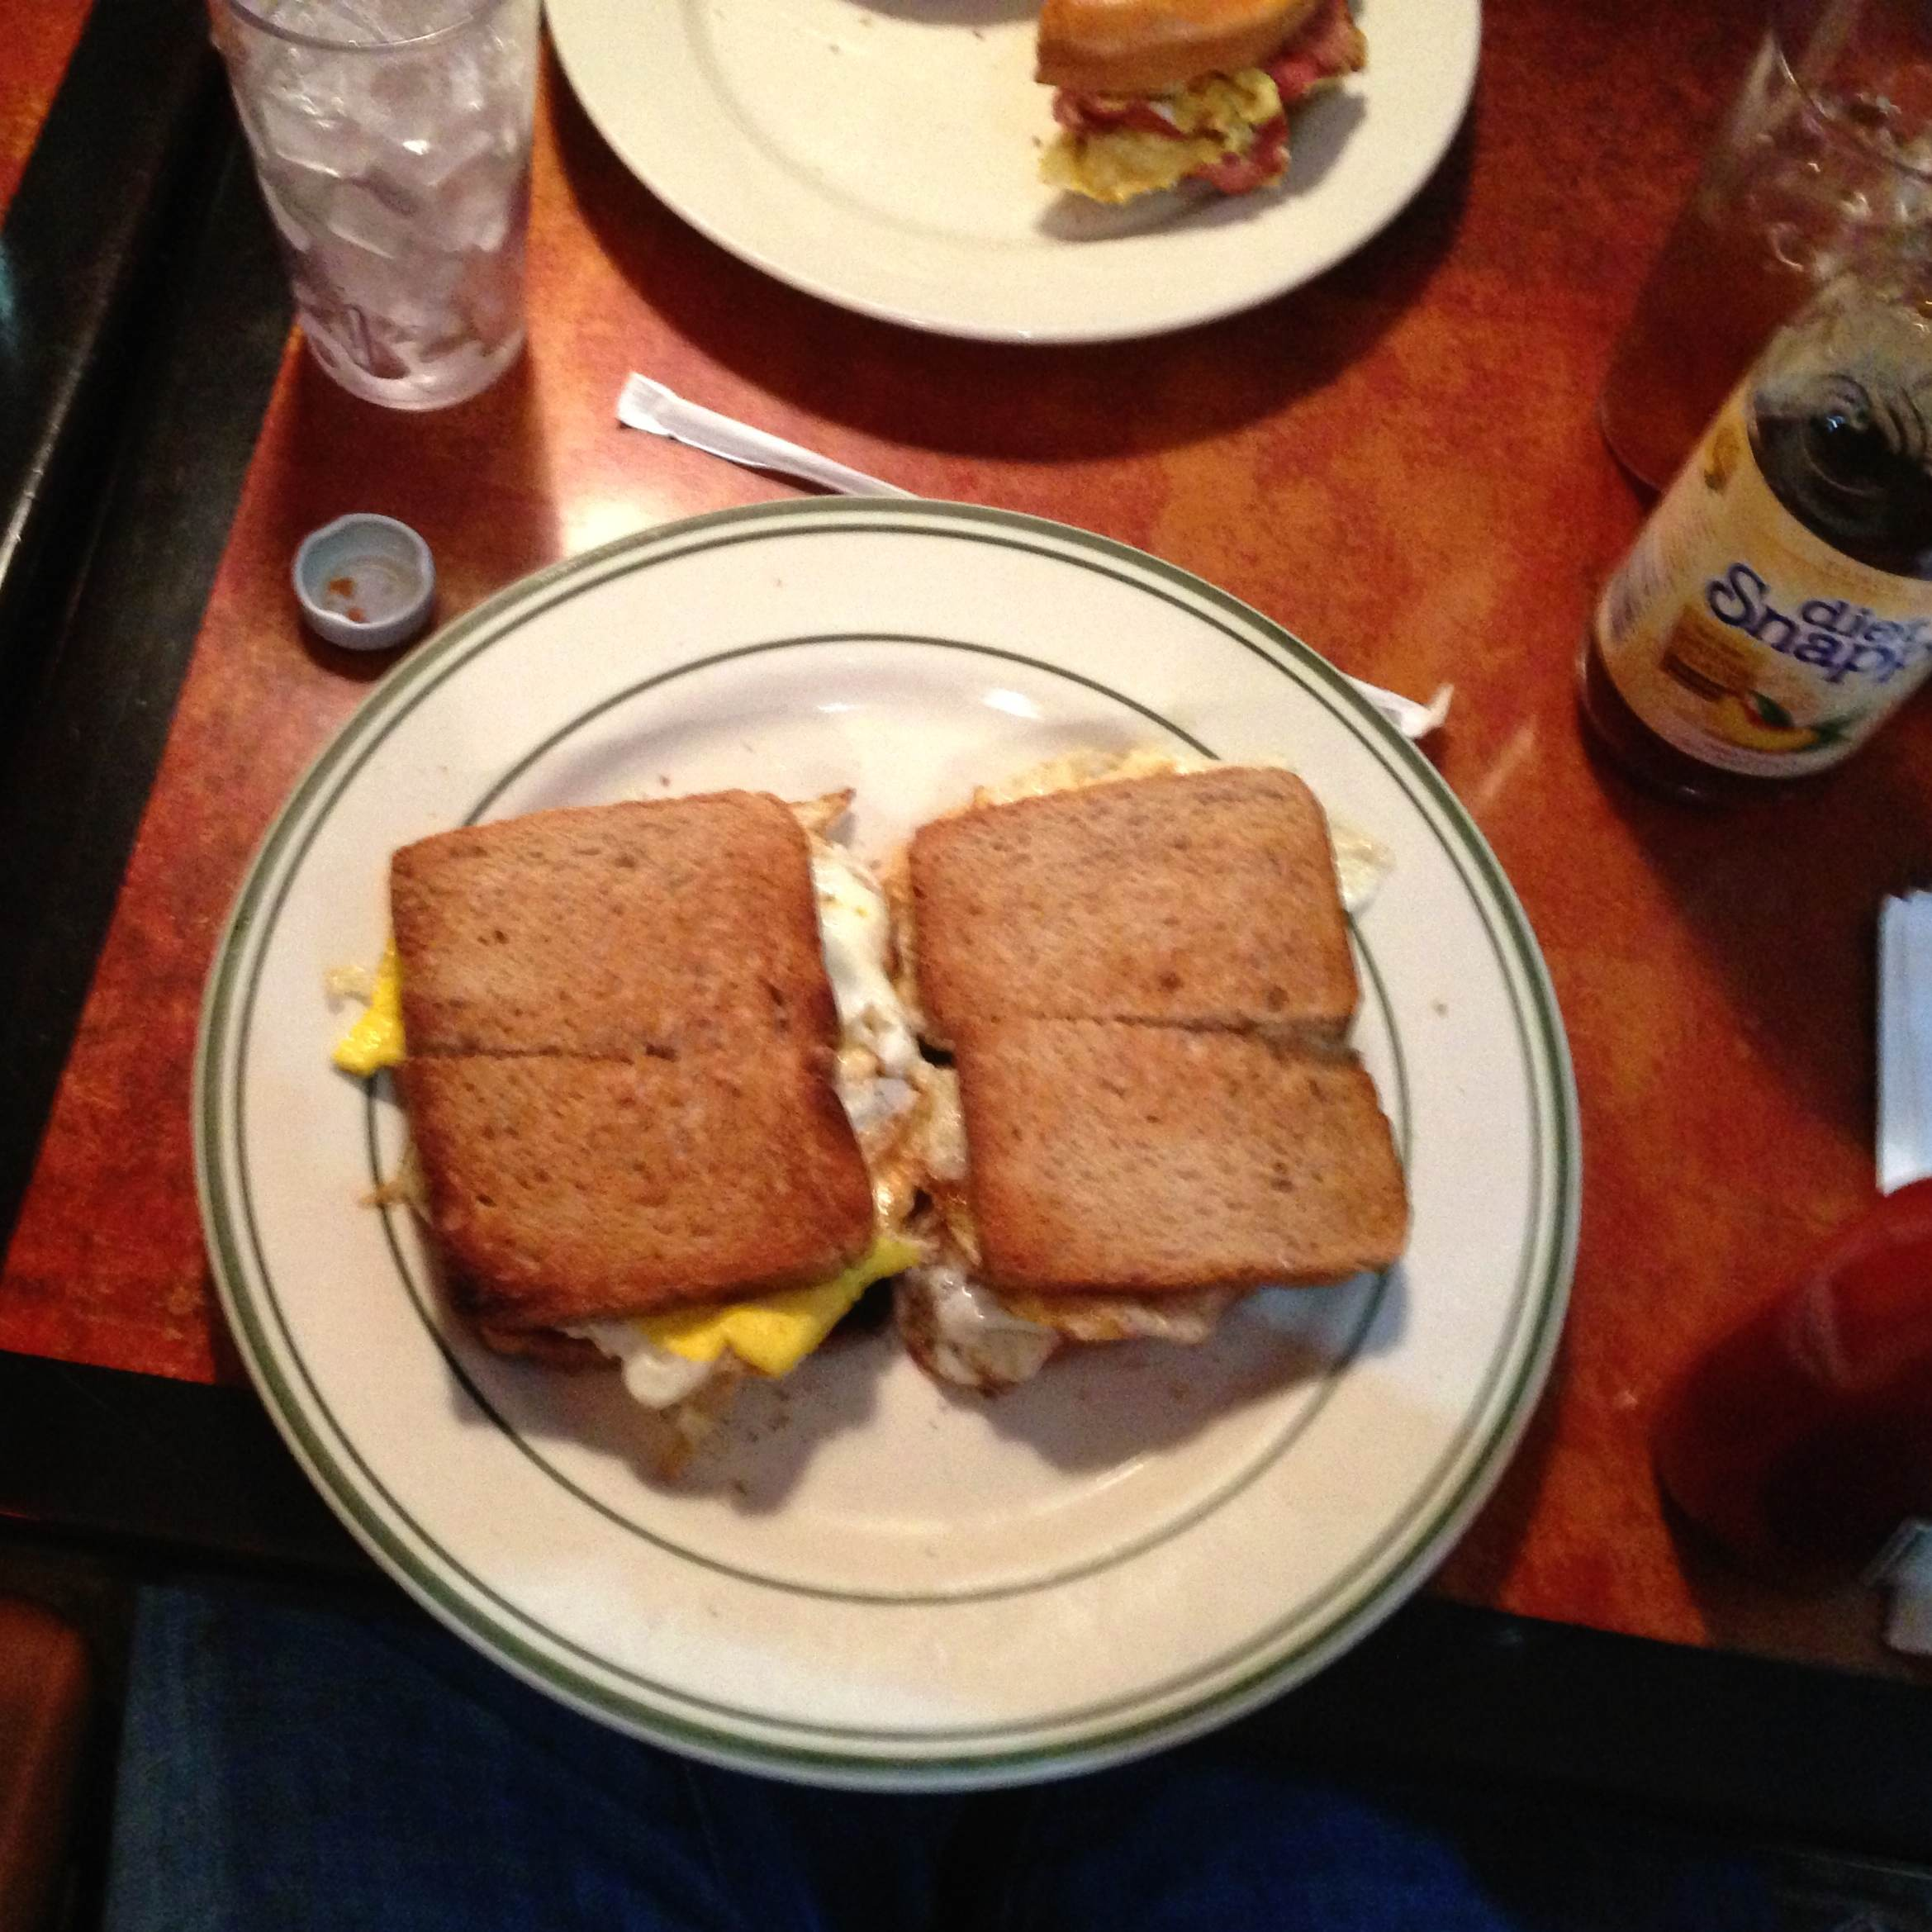 High New York City Nyc Diner Food New Dads On Block New Dads On Block Josh Matt Are Ready To Become Dads Dad Dog Food Wikipedia Dads Dog Food Greenville Pa bark post Dads Dog Food